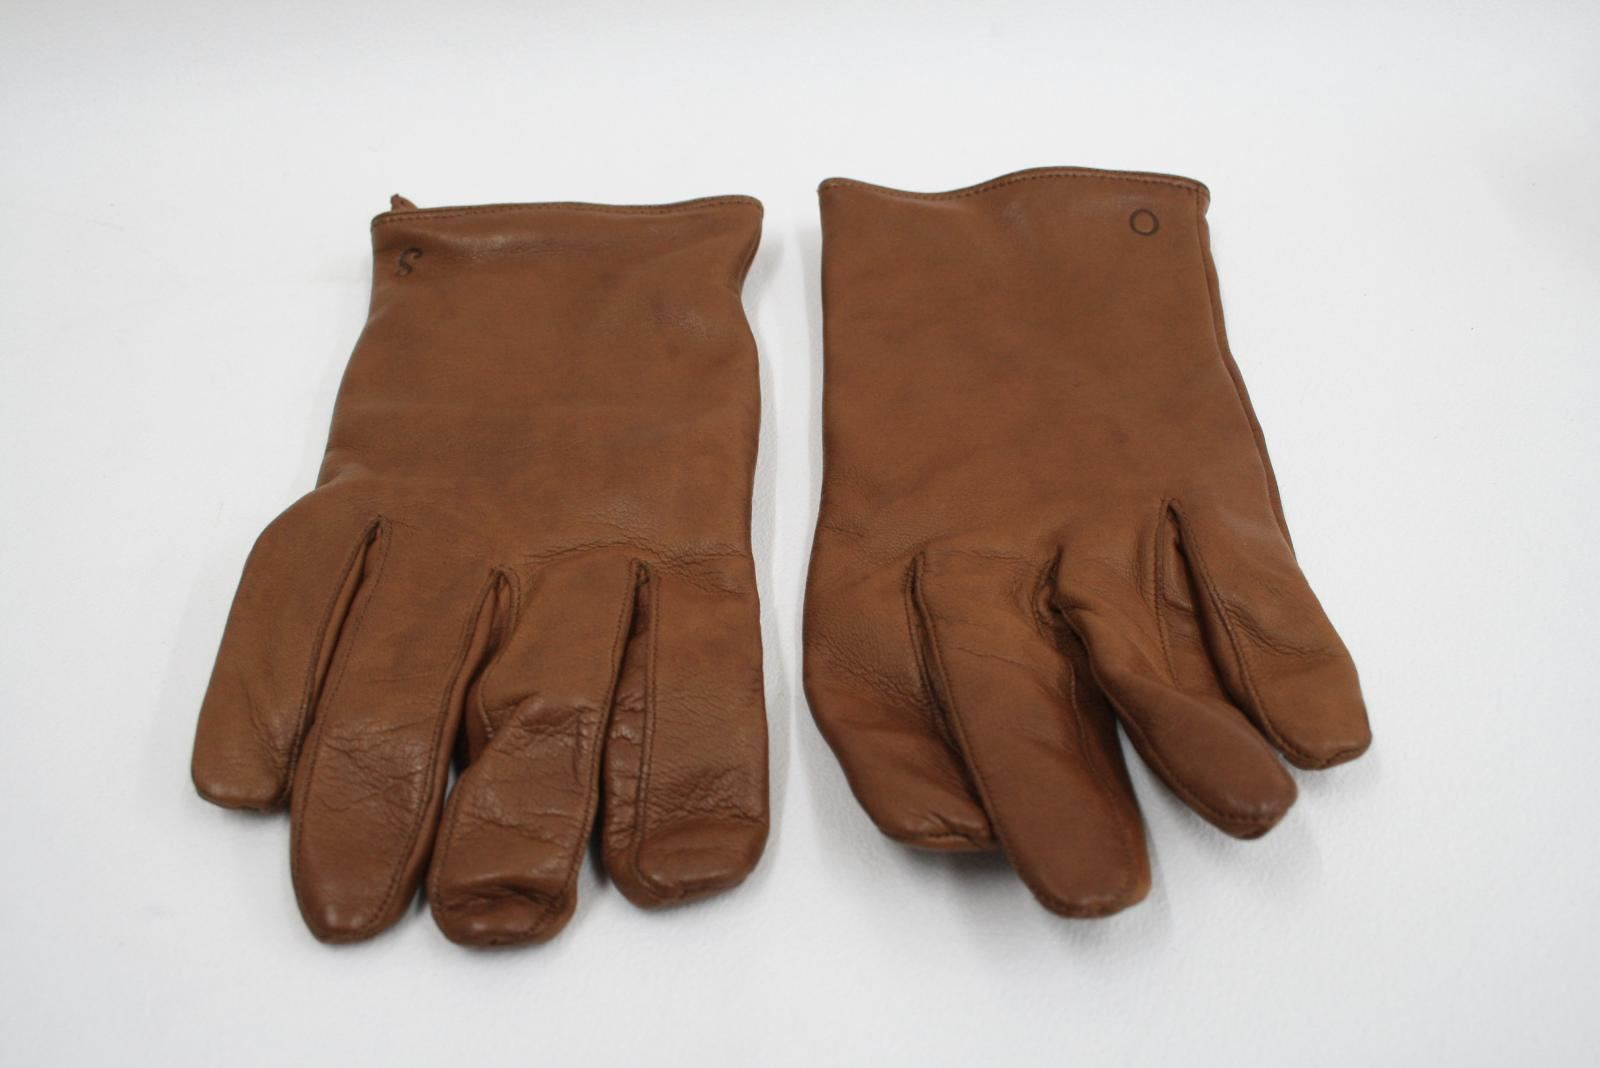 OLIVER-SWEENEY-Men-039-s-Brown-Leather-Cashmere-Lining-Zip-Up-Gloves-Size-M-L-NEW